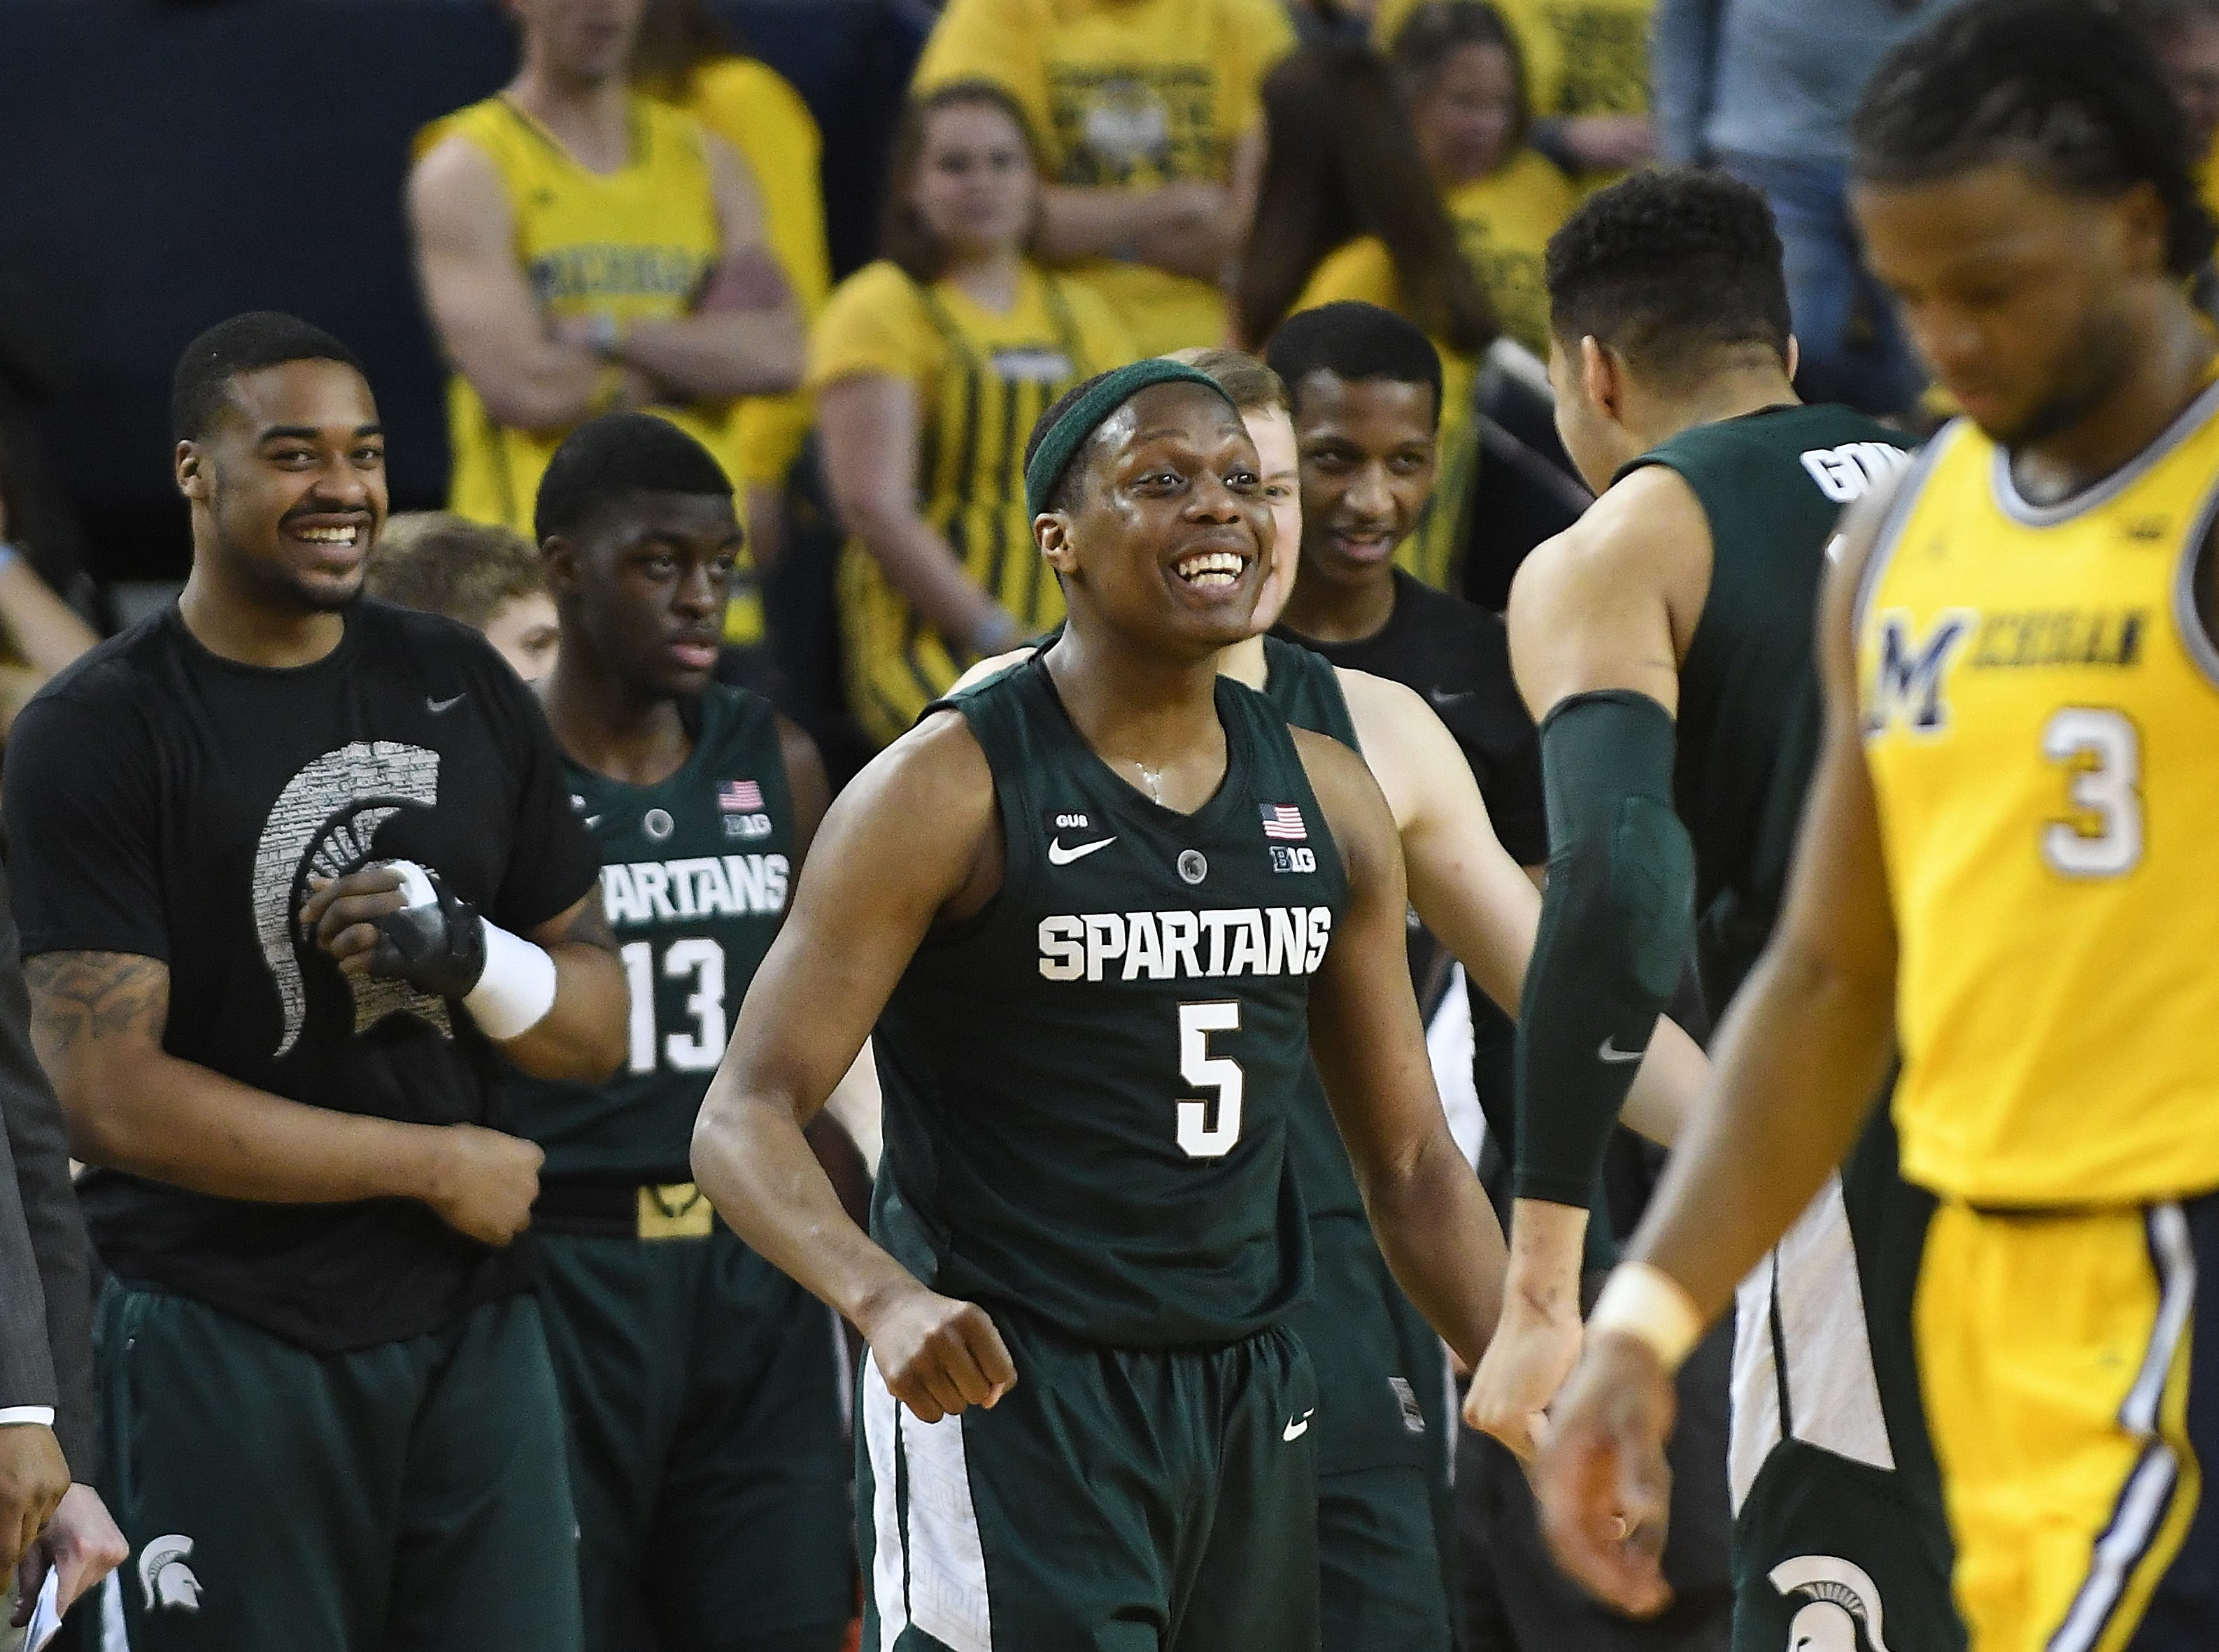 Michigan State's Cassius Winston celebrates as Michigan's Zavier Simpson walks off the floor after the State victory in the second half. University of Michigan vs. Michigan State at Crisler Center in Ann Arbor, Michigan on February 24, 2019.  (Image by Daniel Mears / The Detroit News)  77-70